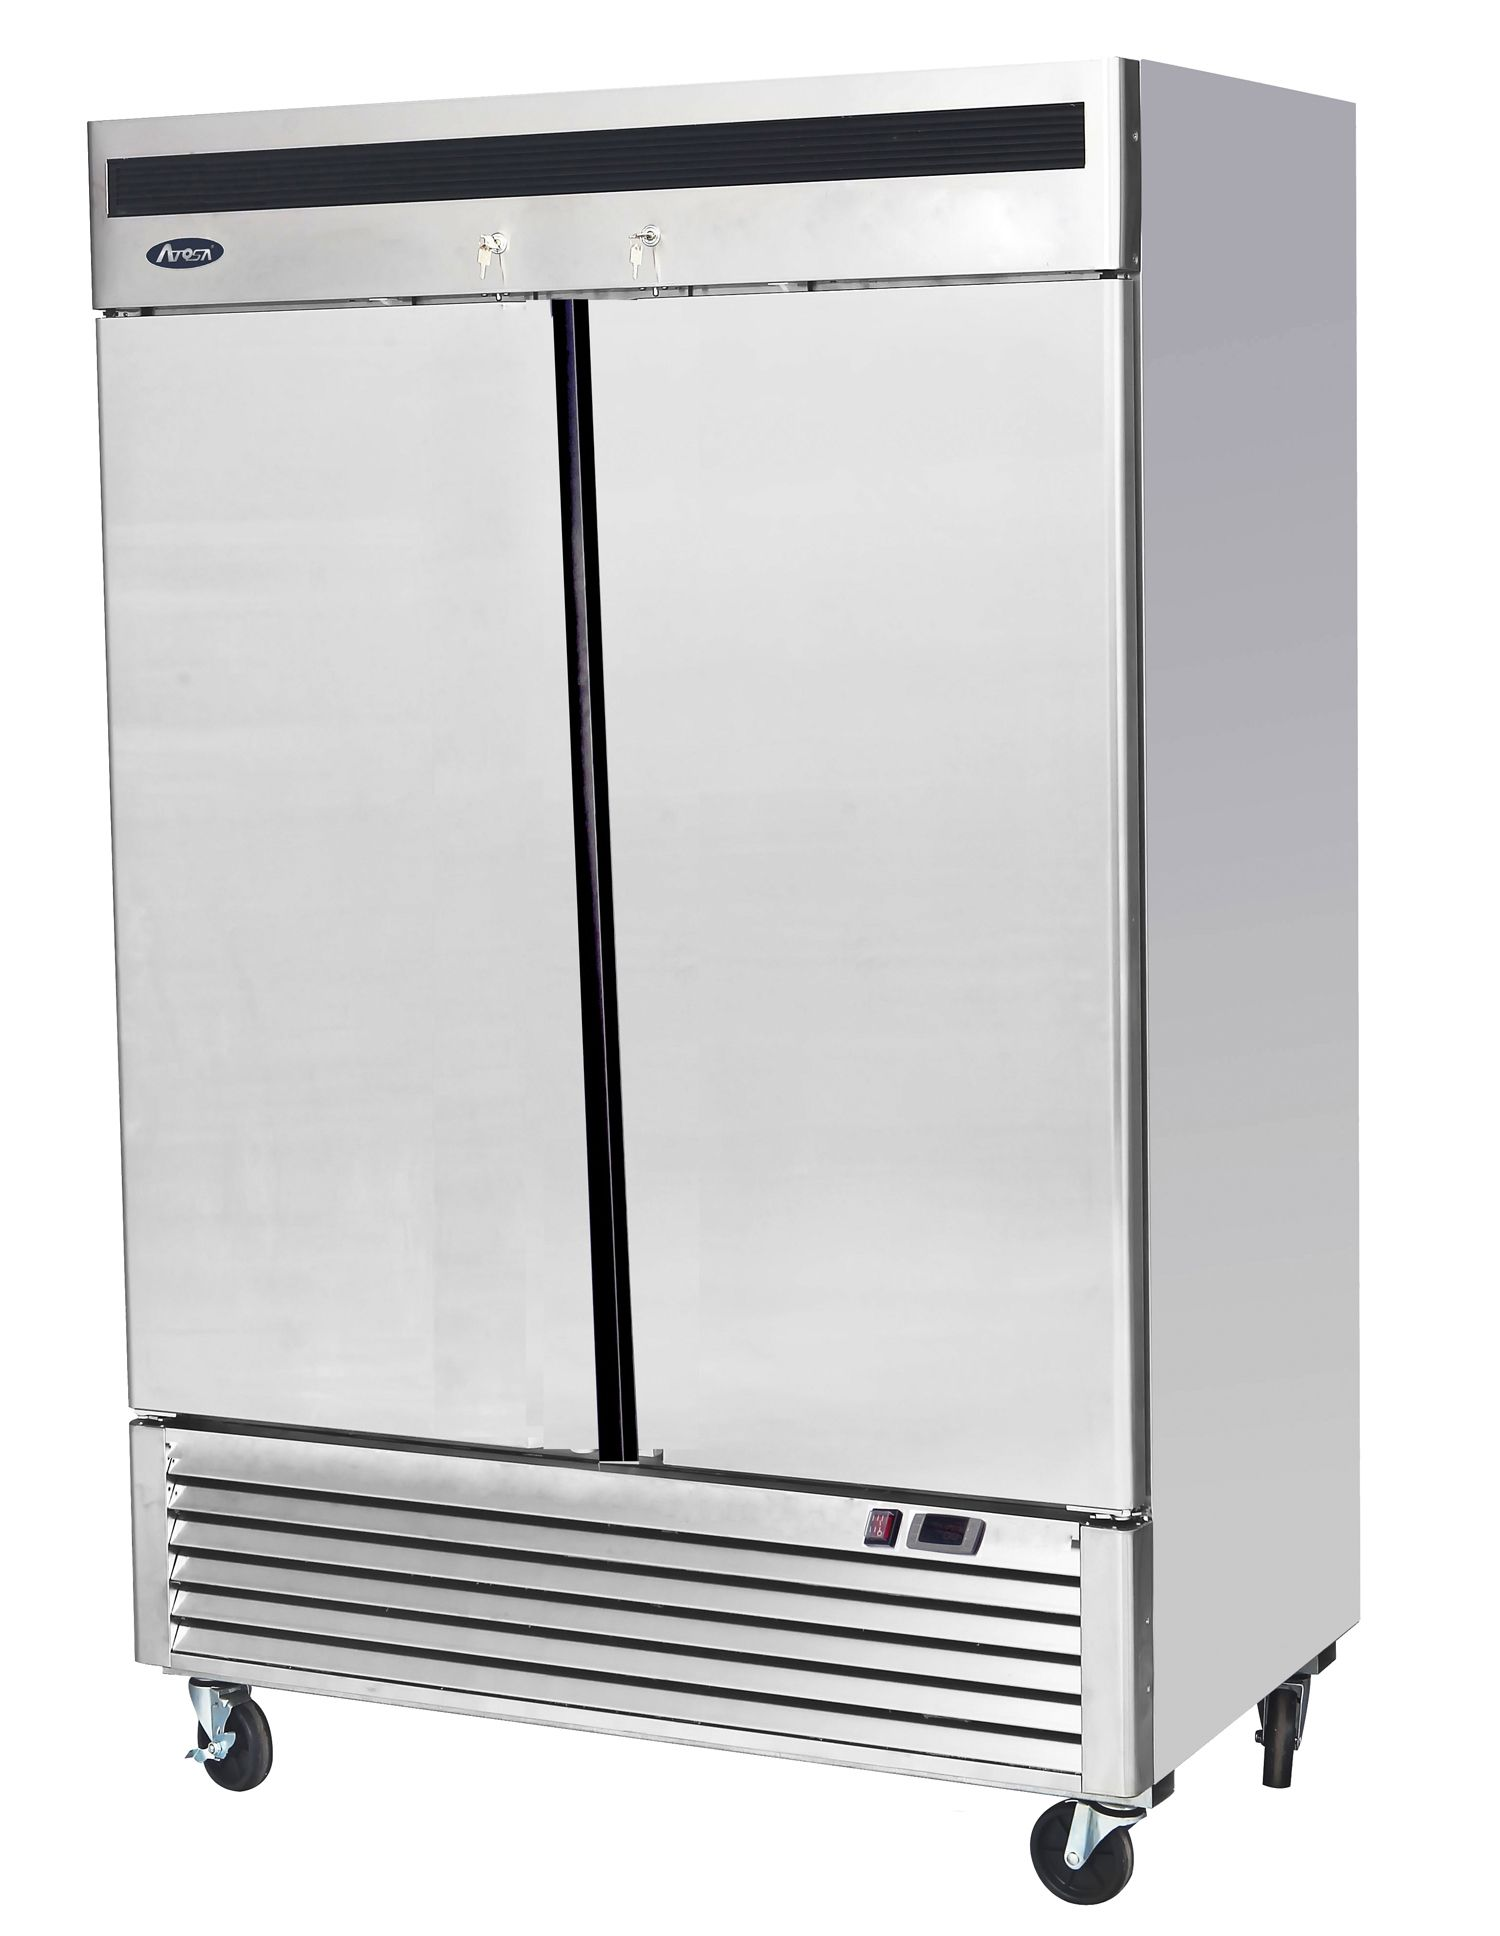 Atosa MBL8960 Double Door Upright Refrigerator | Commercial ...